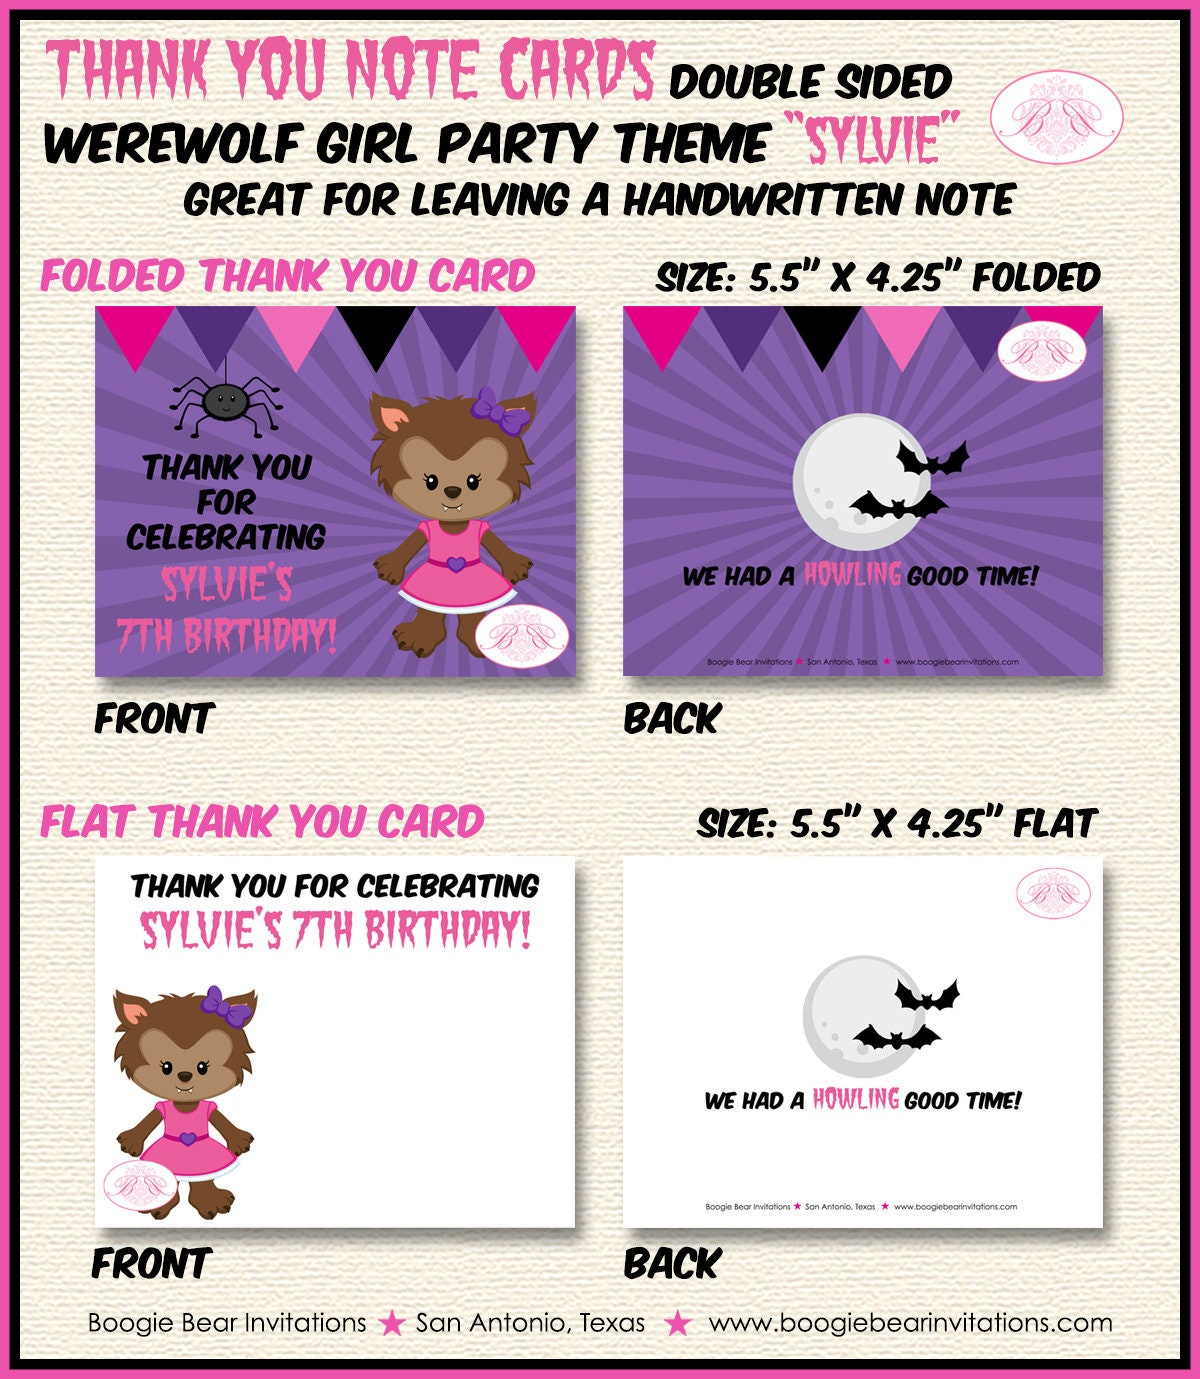 Werewolf Girl Party Thank You Card Note Birthday Full Moon 1st 2nd 3rd 4th 5th 6th 7th 8th 9th Boogie Bear Invitations Sylvie Theme Printed